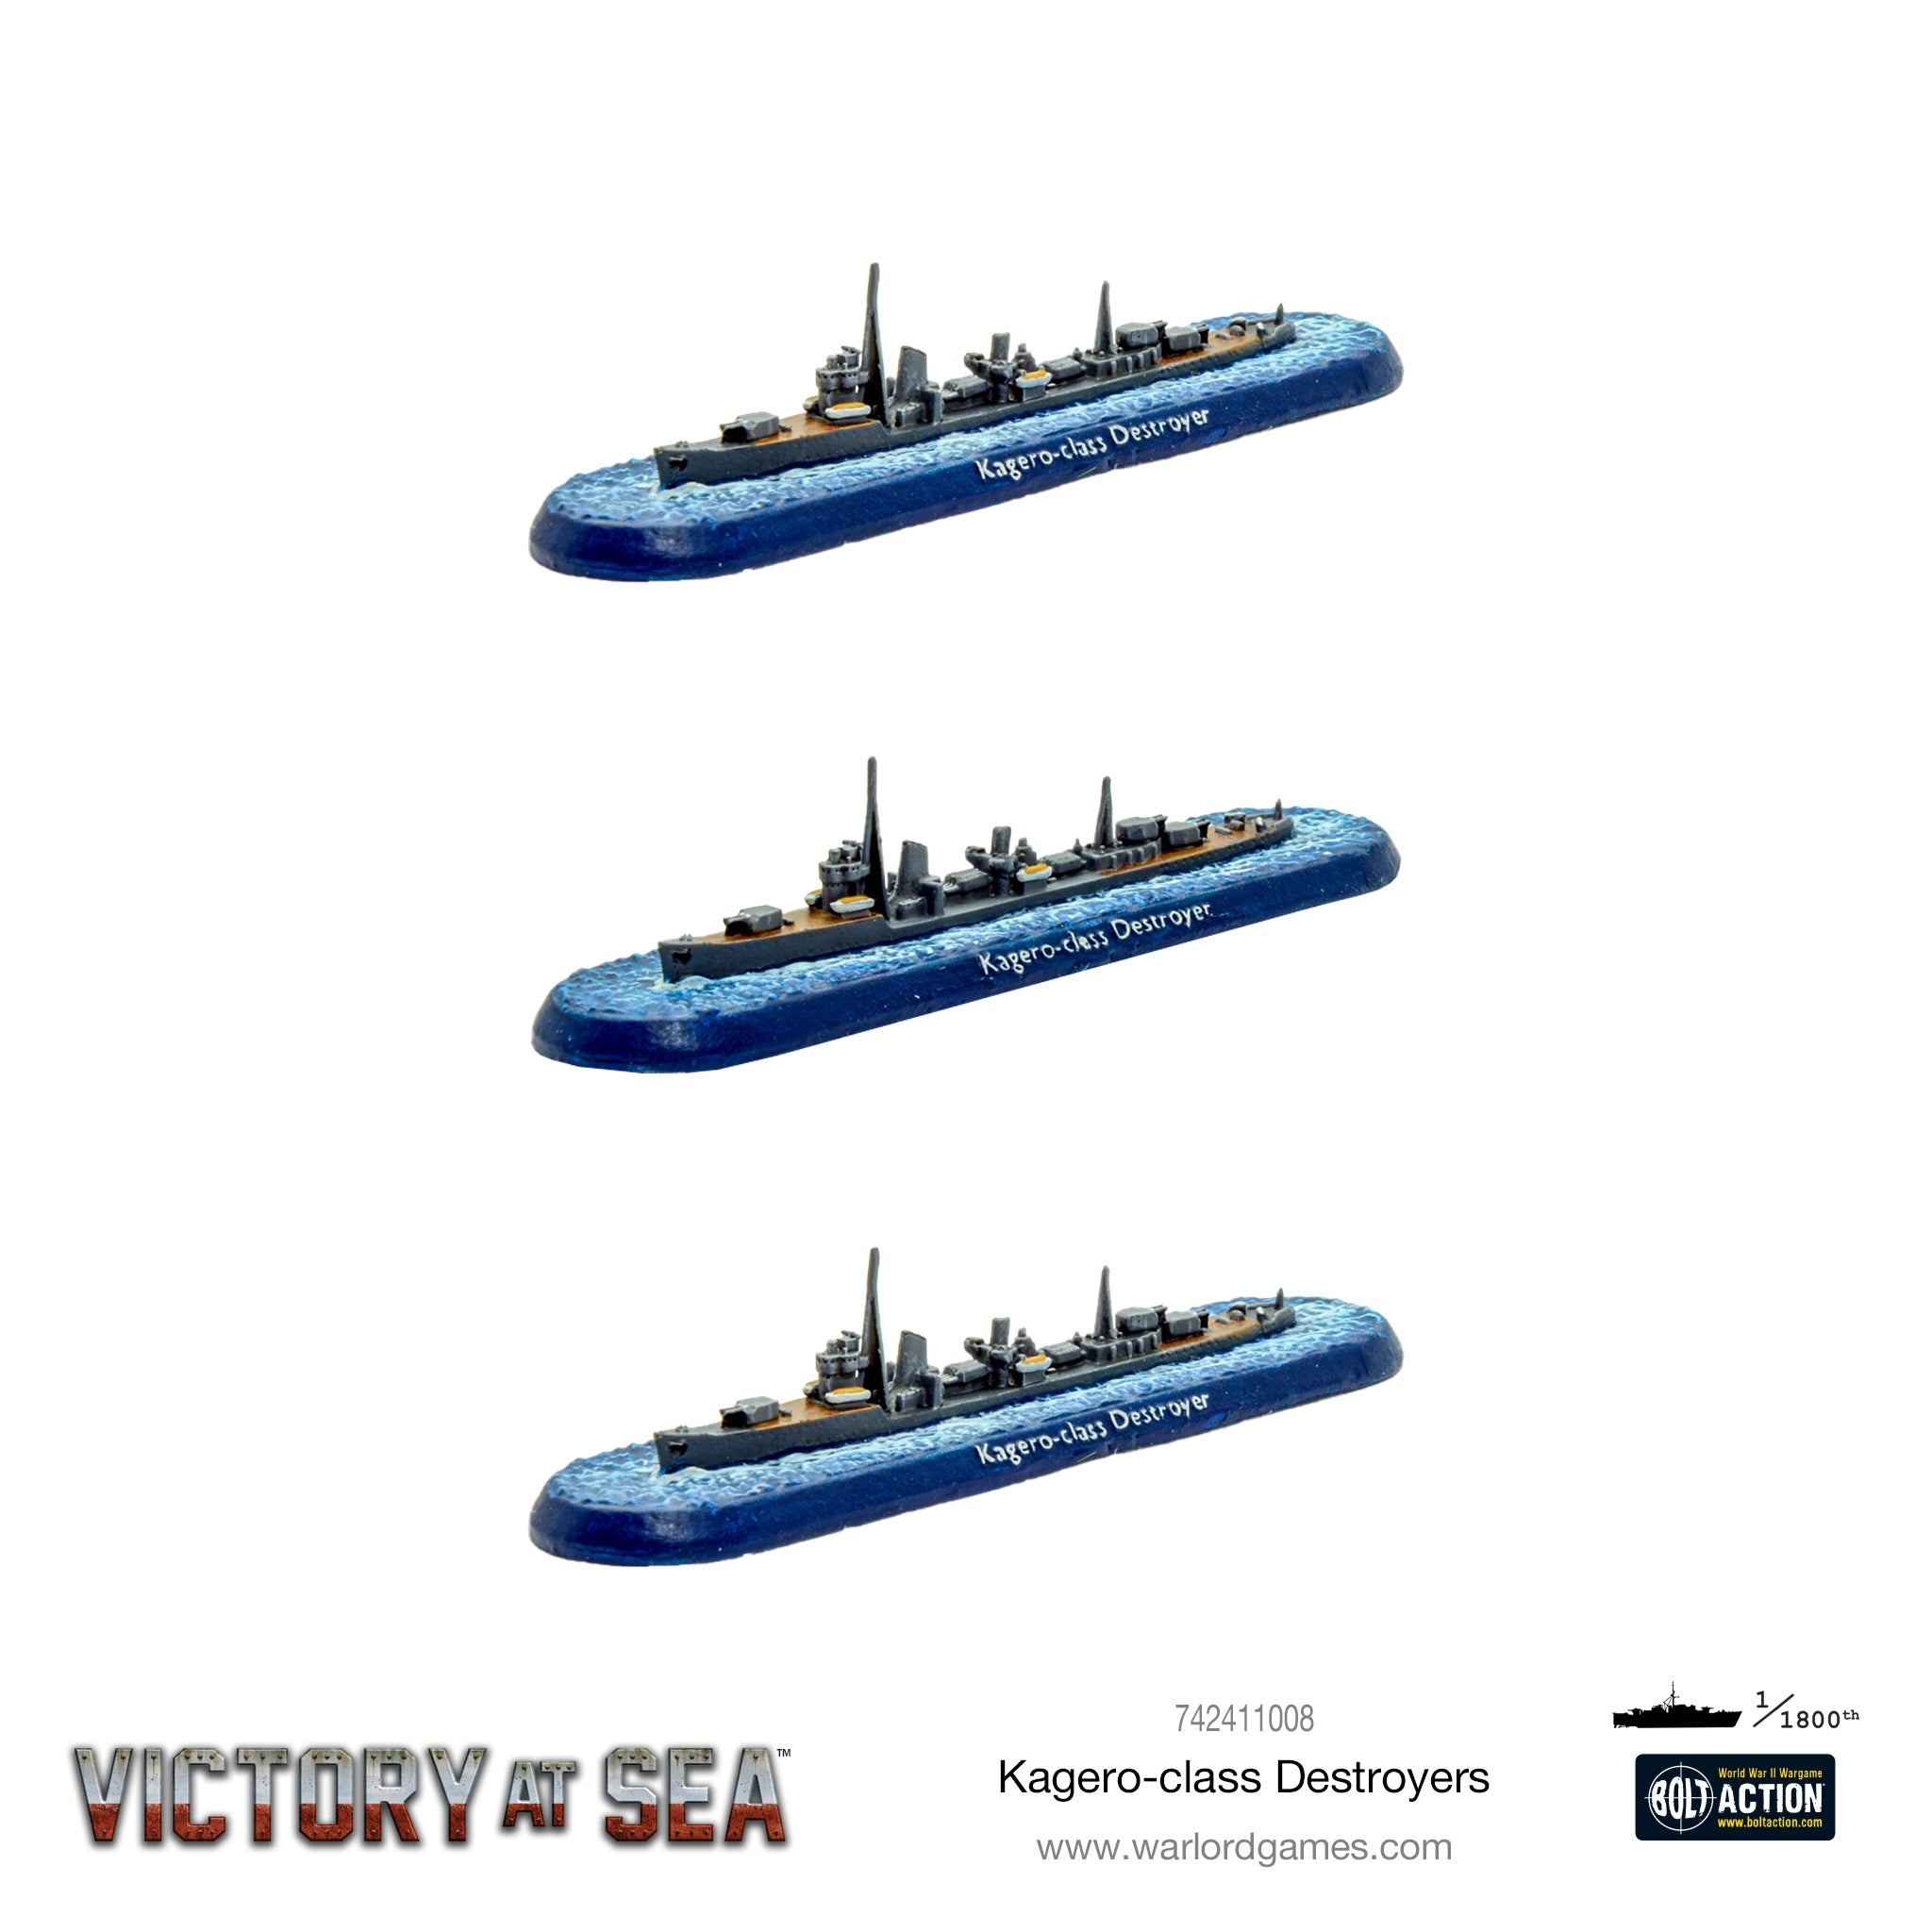 Victory at Sea - Kagero-class Destroyers